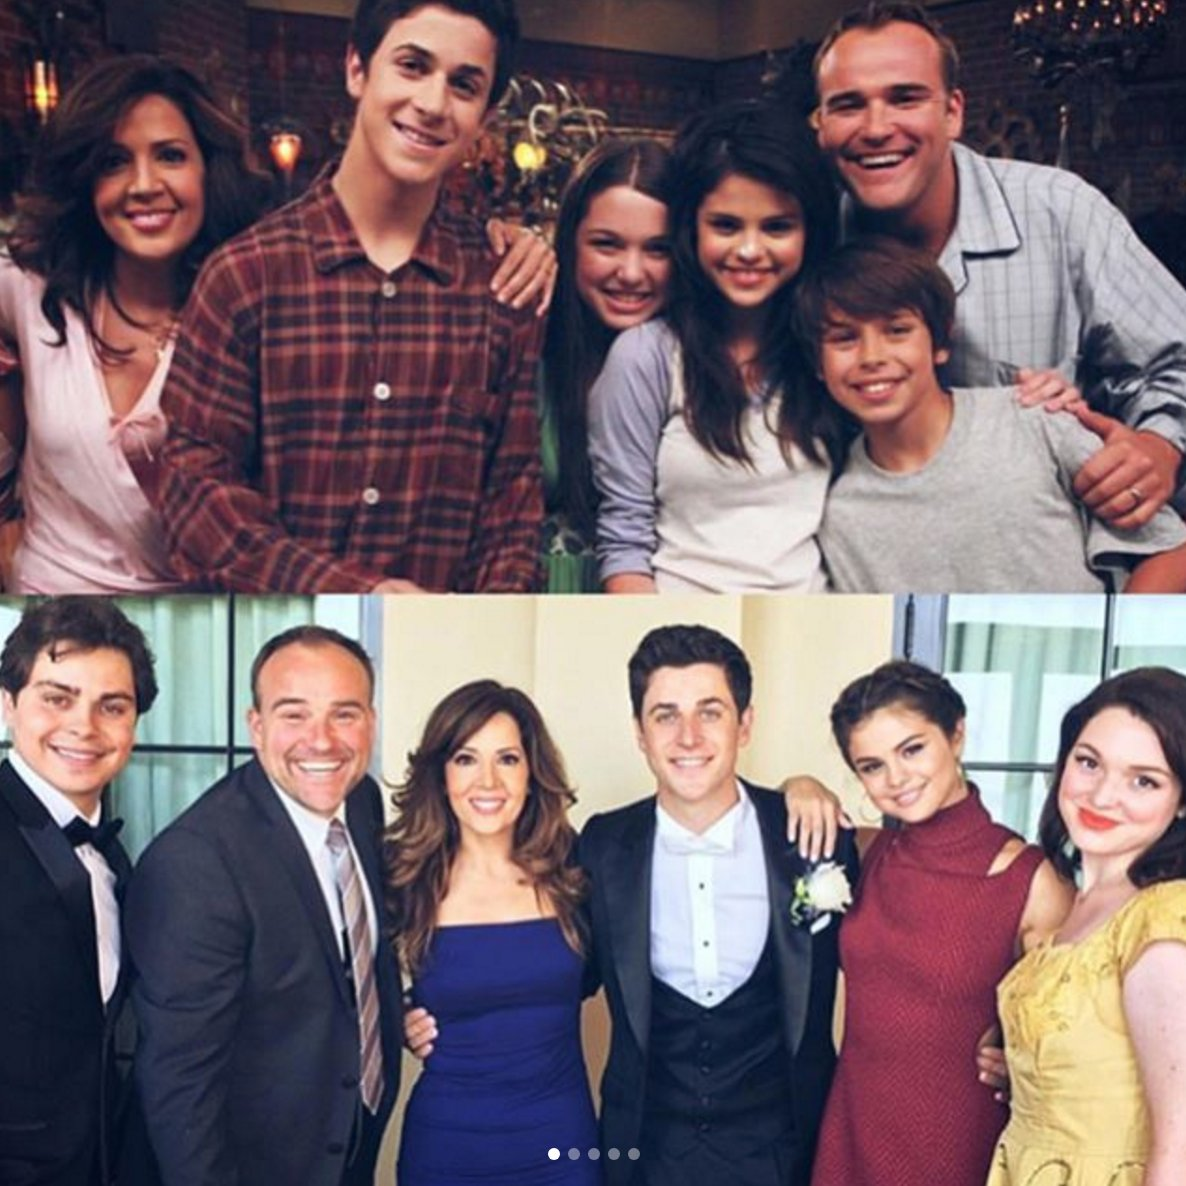 #TransformationTuesday, #WizardsOfWaverlyPlace style 🔮